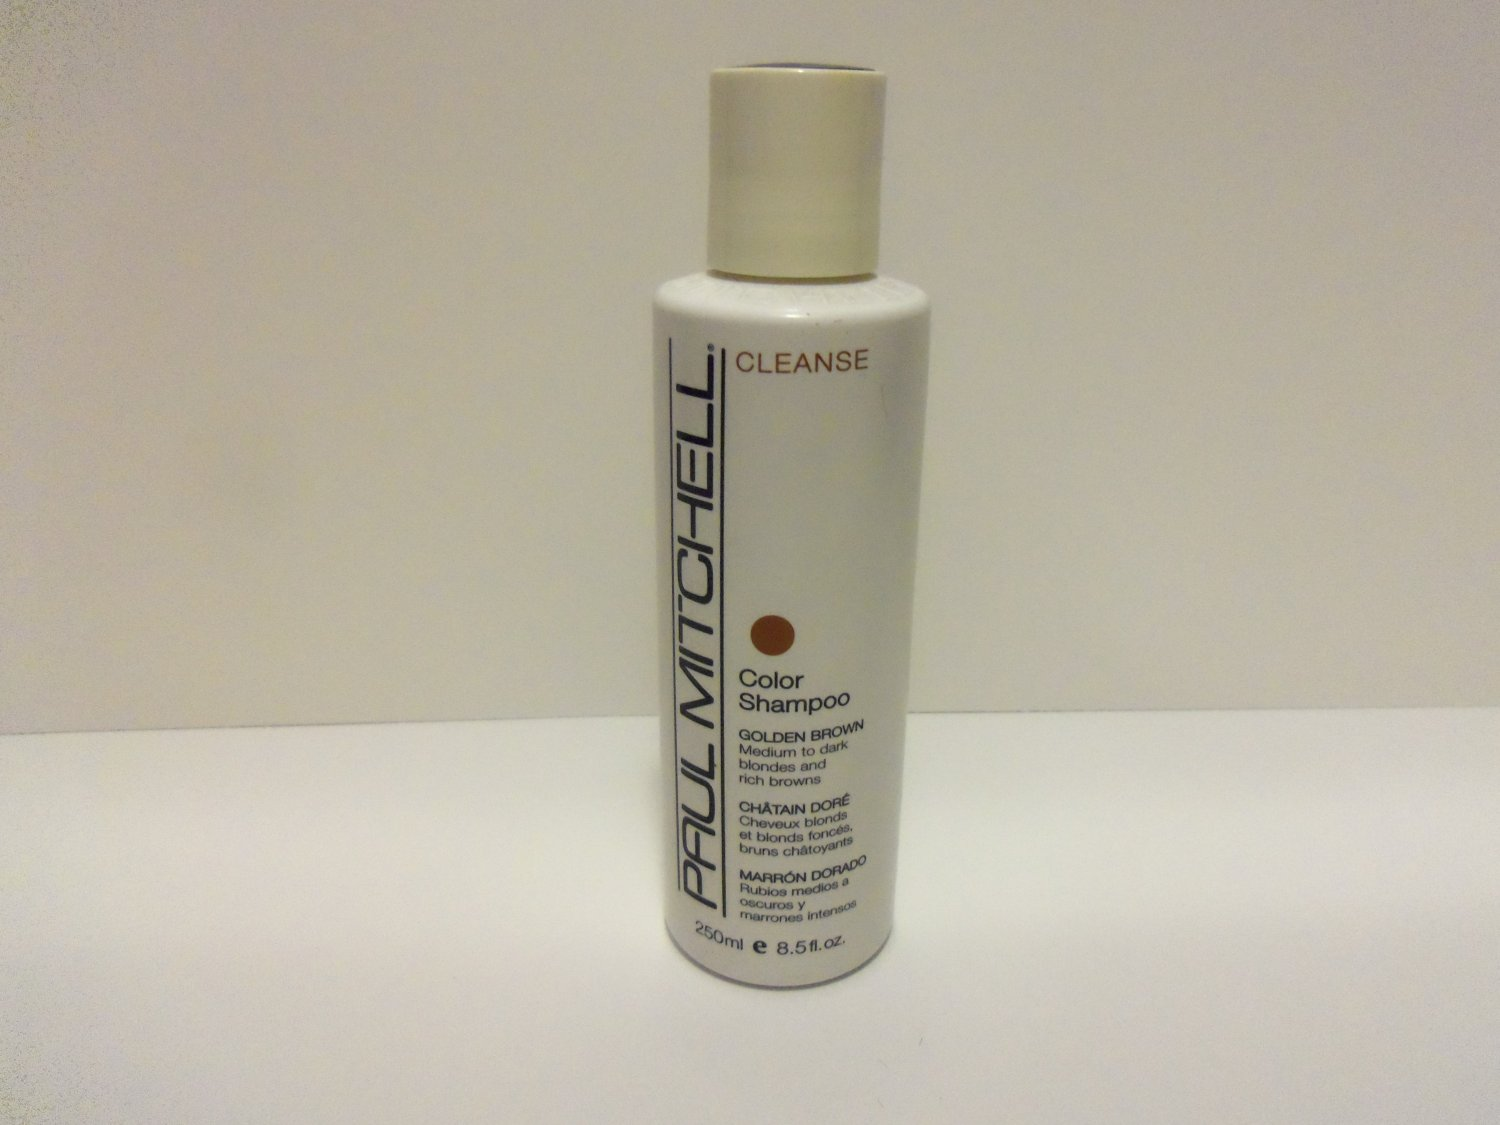 Paul Mitchell Color Shampoo (Golden Brown)8.5fl oz